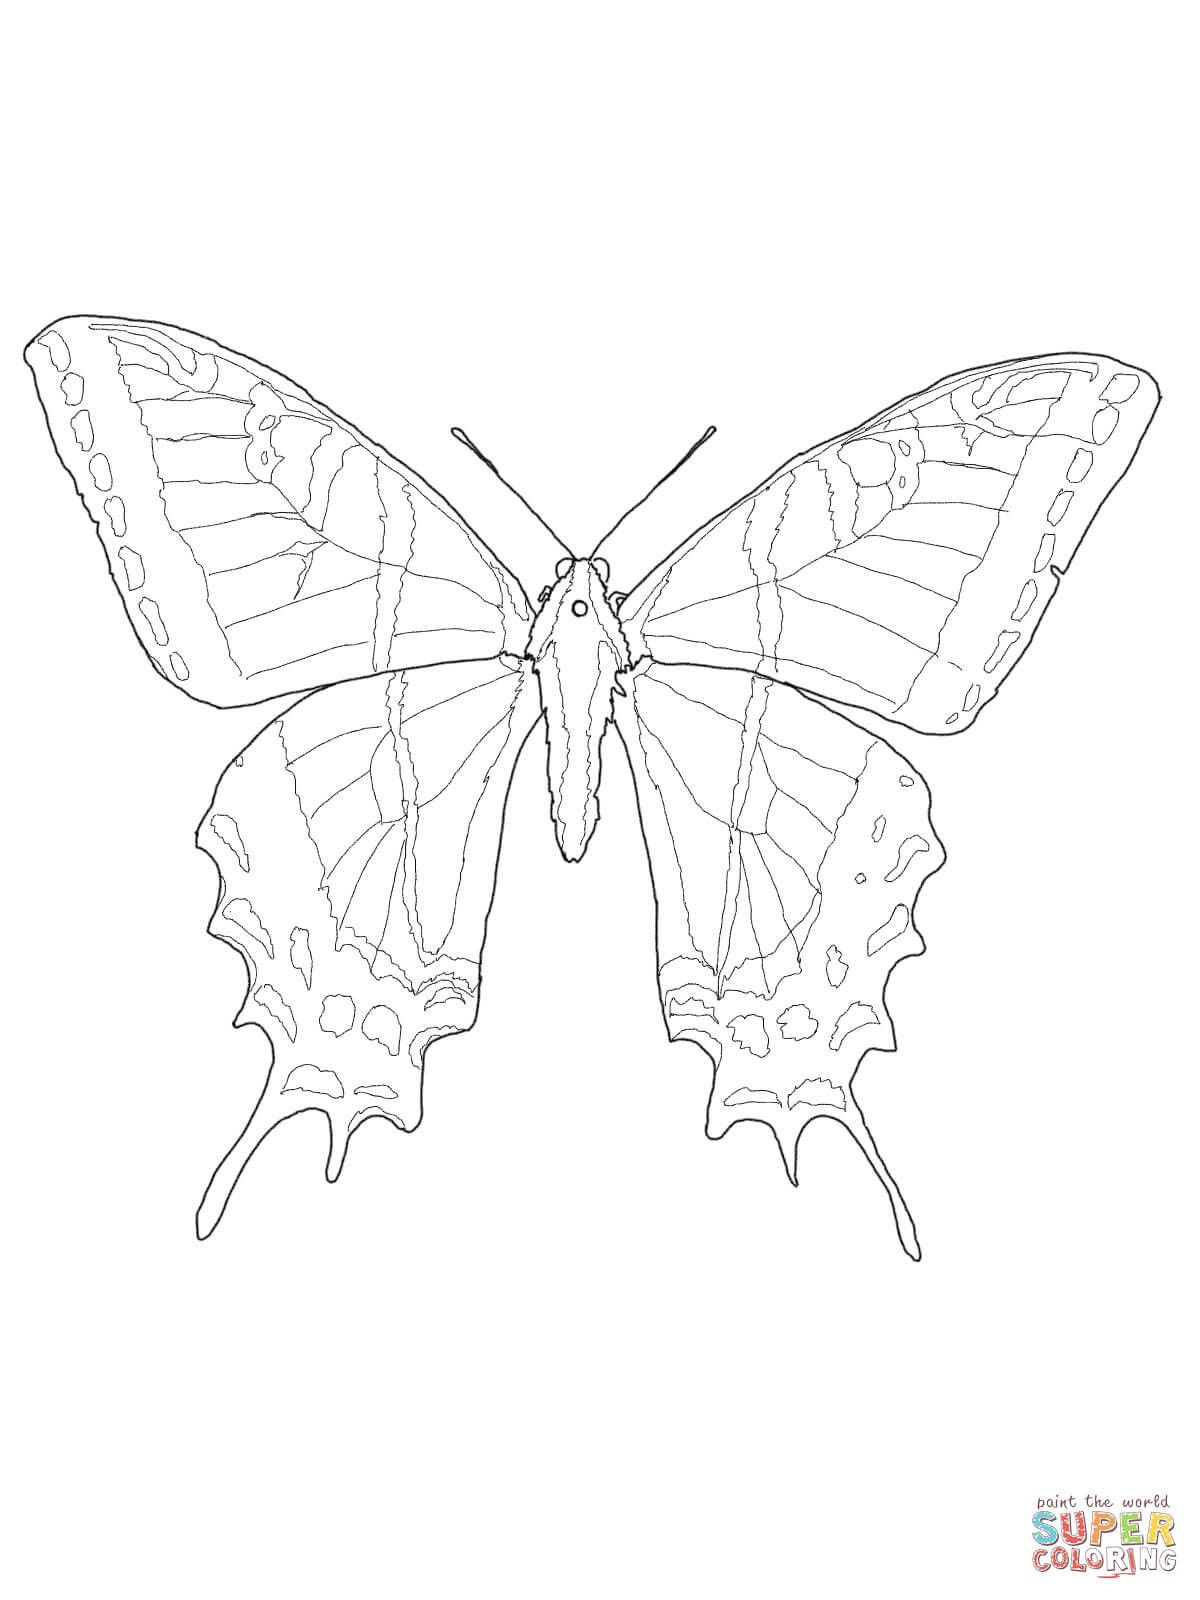 Swallowtail Butterfly Coloring Page Youngandtae Com Butterfly Coloring Page Insect Coloring Pages Coloring Pages [ 1600 x 1200 Pixel ]